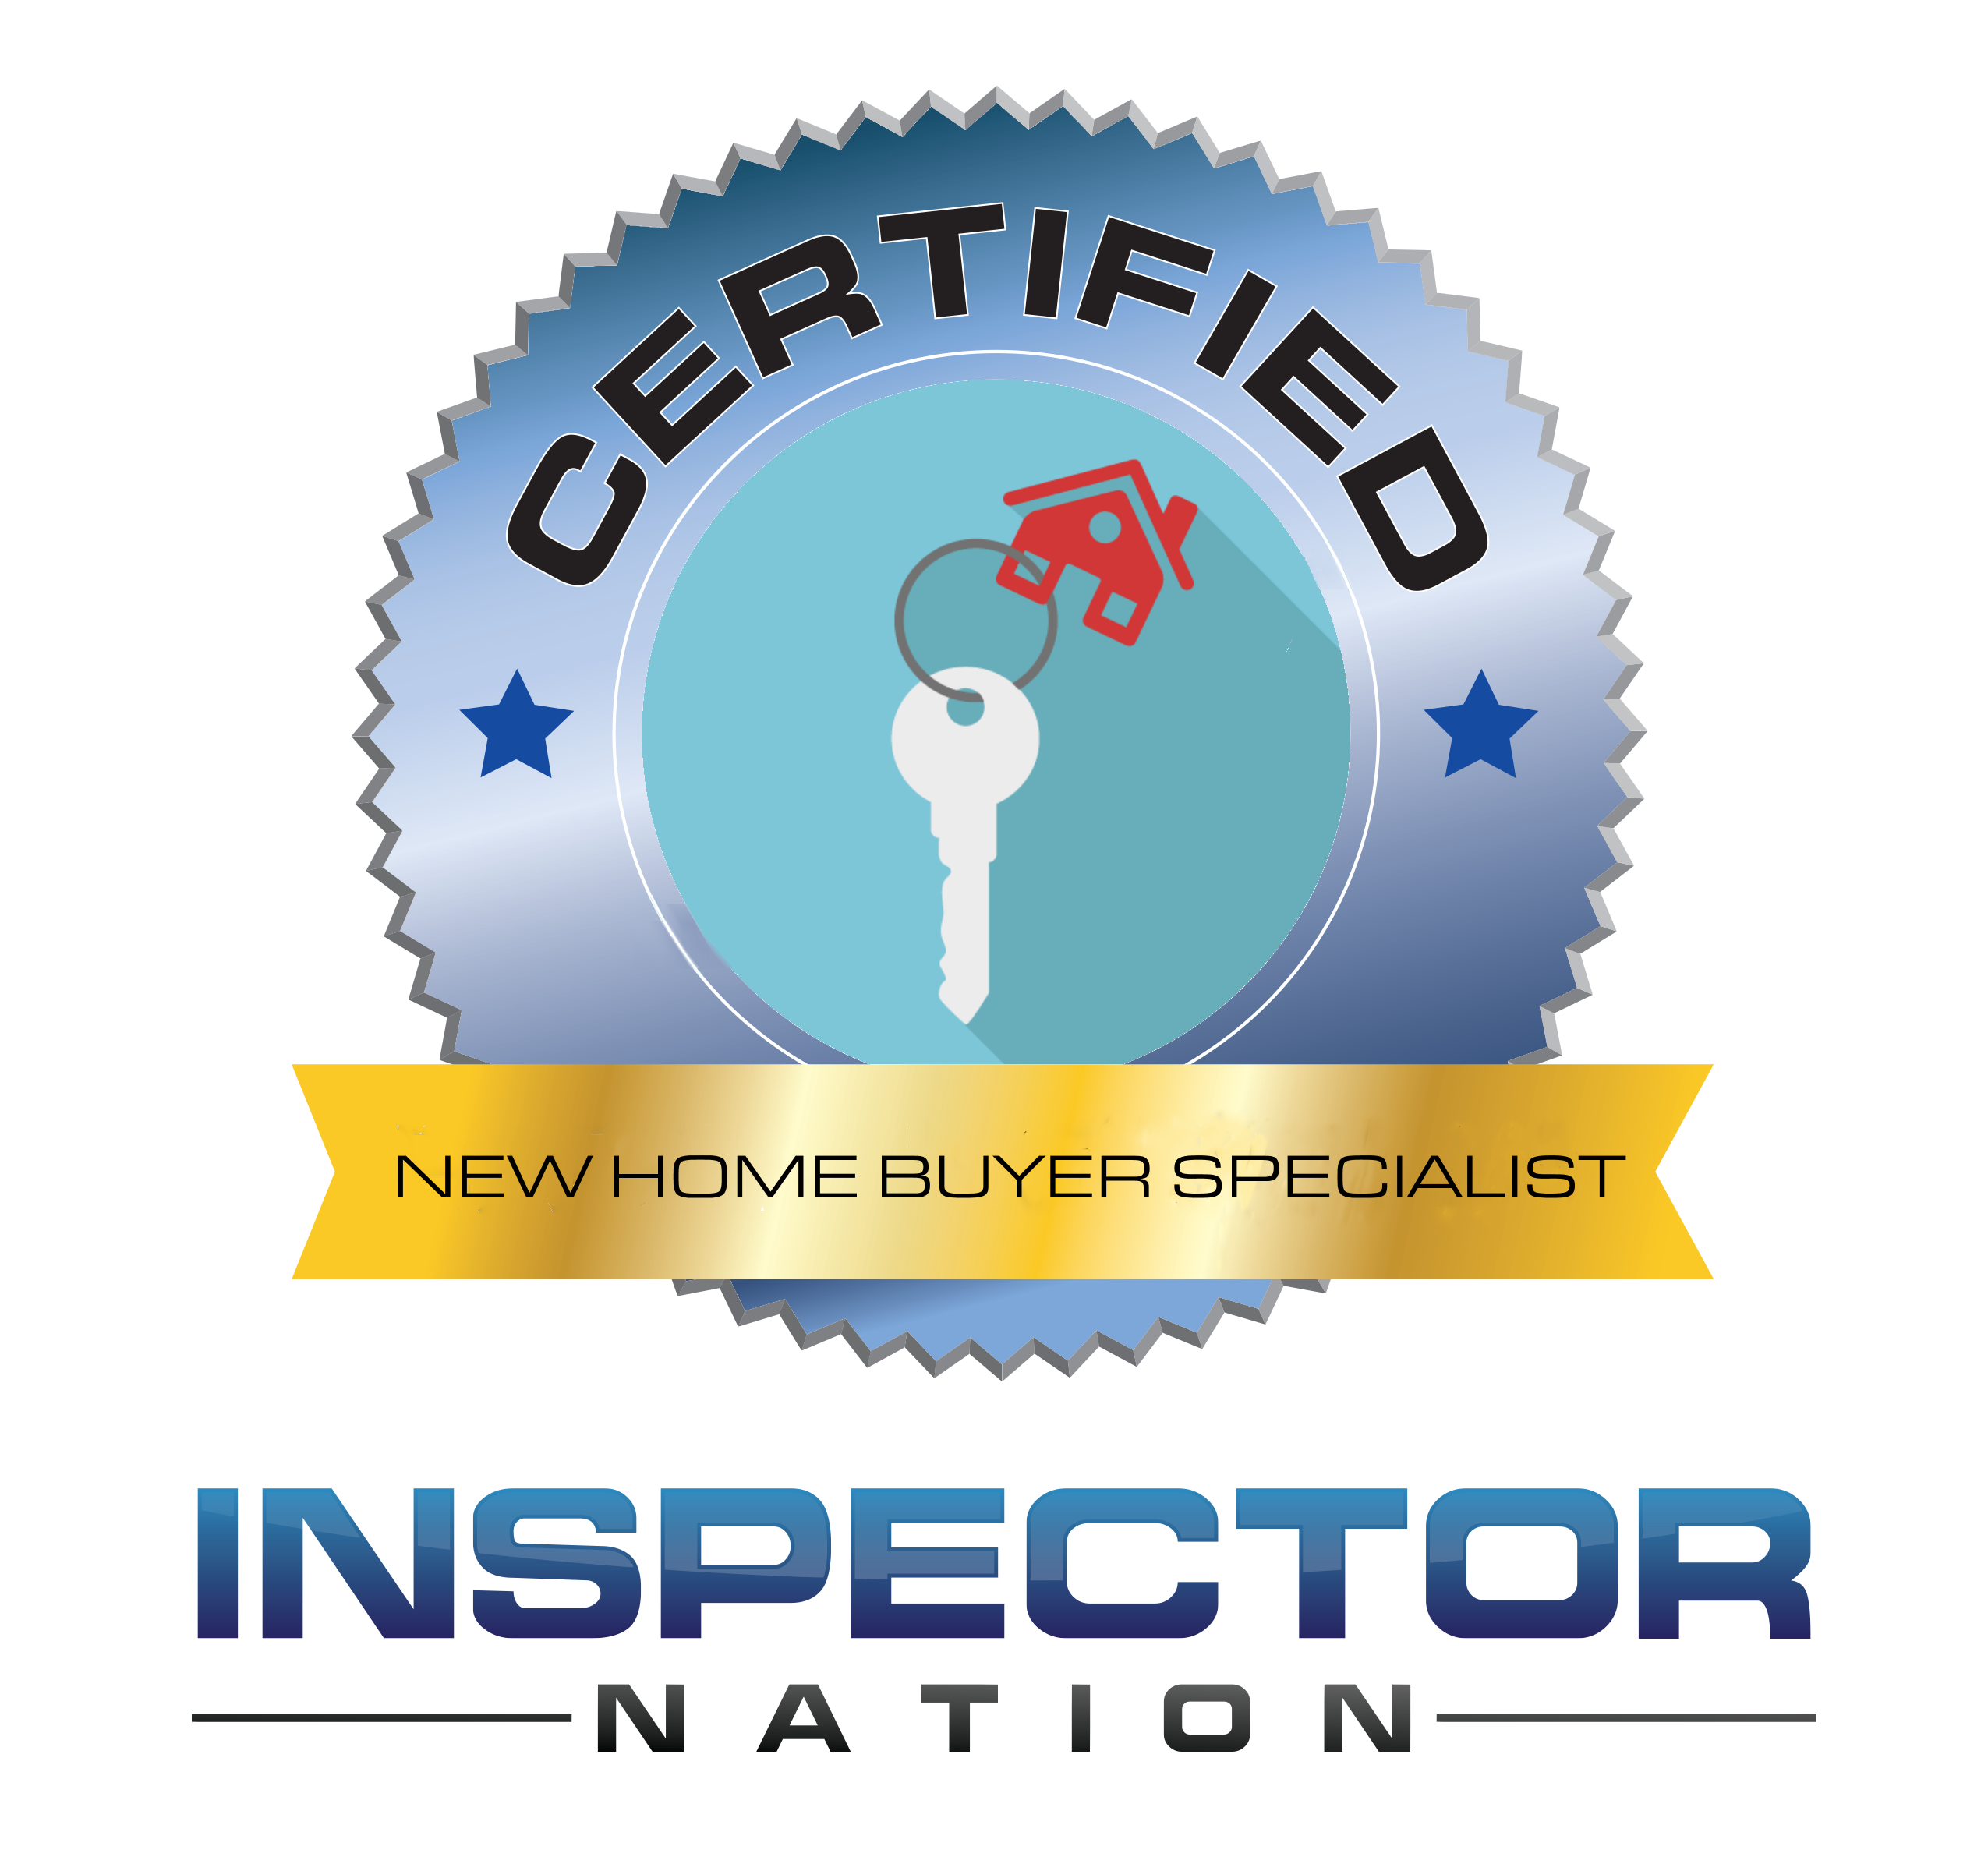 new home buyer specialist inspector nation certified home inspector badge emblem icon